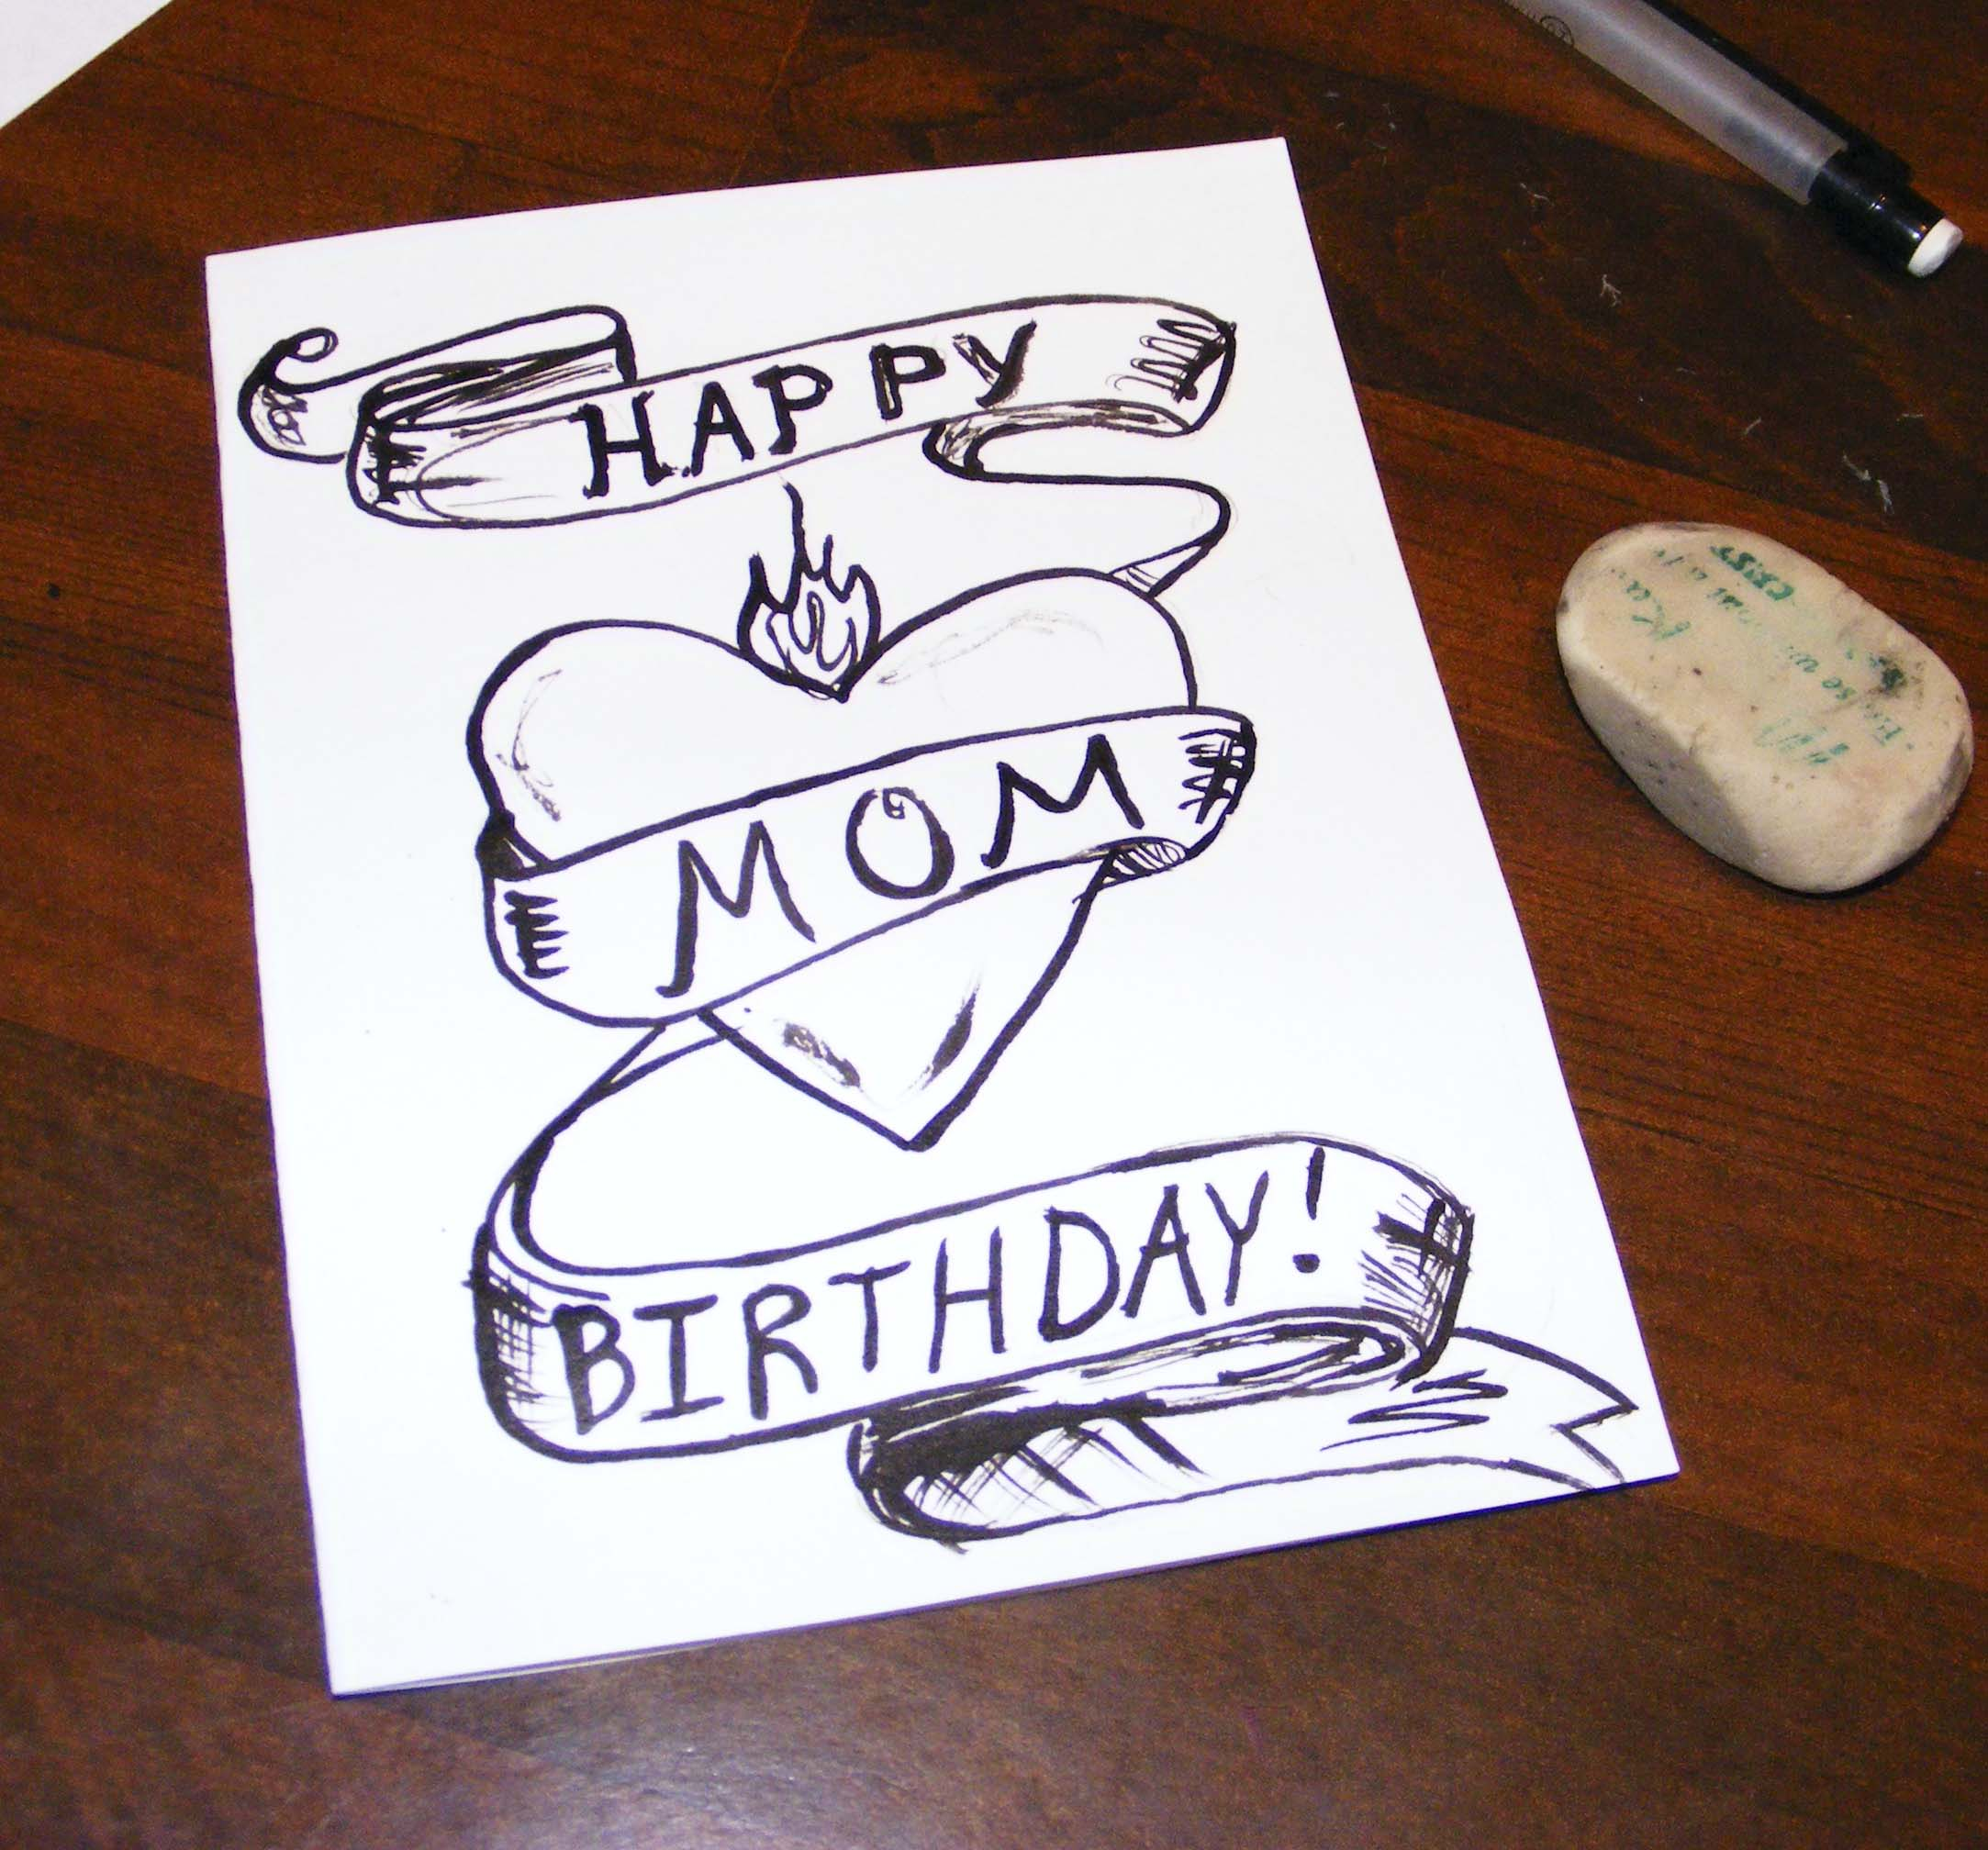 birthday gift drawing ideas ; 7188e5c5c23ca24be83697527bbba8e7_happy-birthday-cards-for-mom-card-design-ideas-happy-birthday-drawing-ideas-for-mom_2166-2016